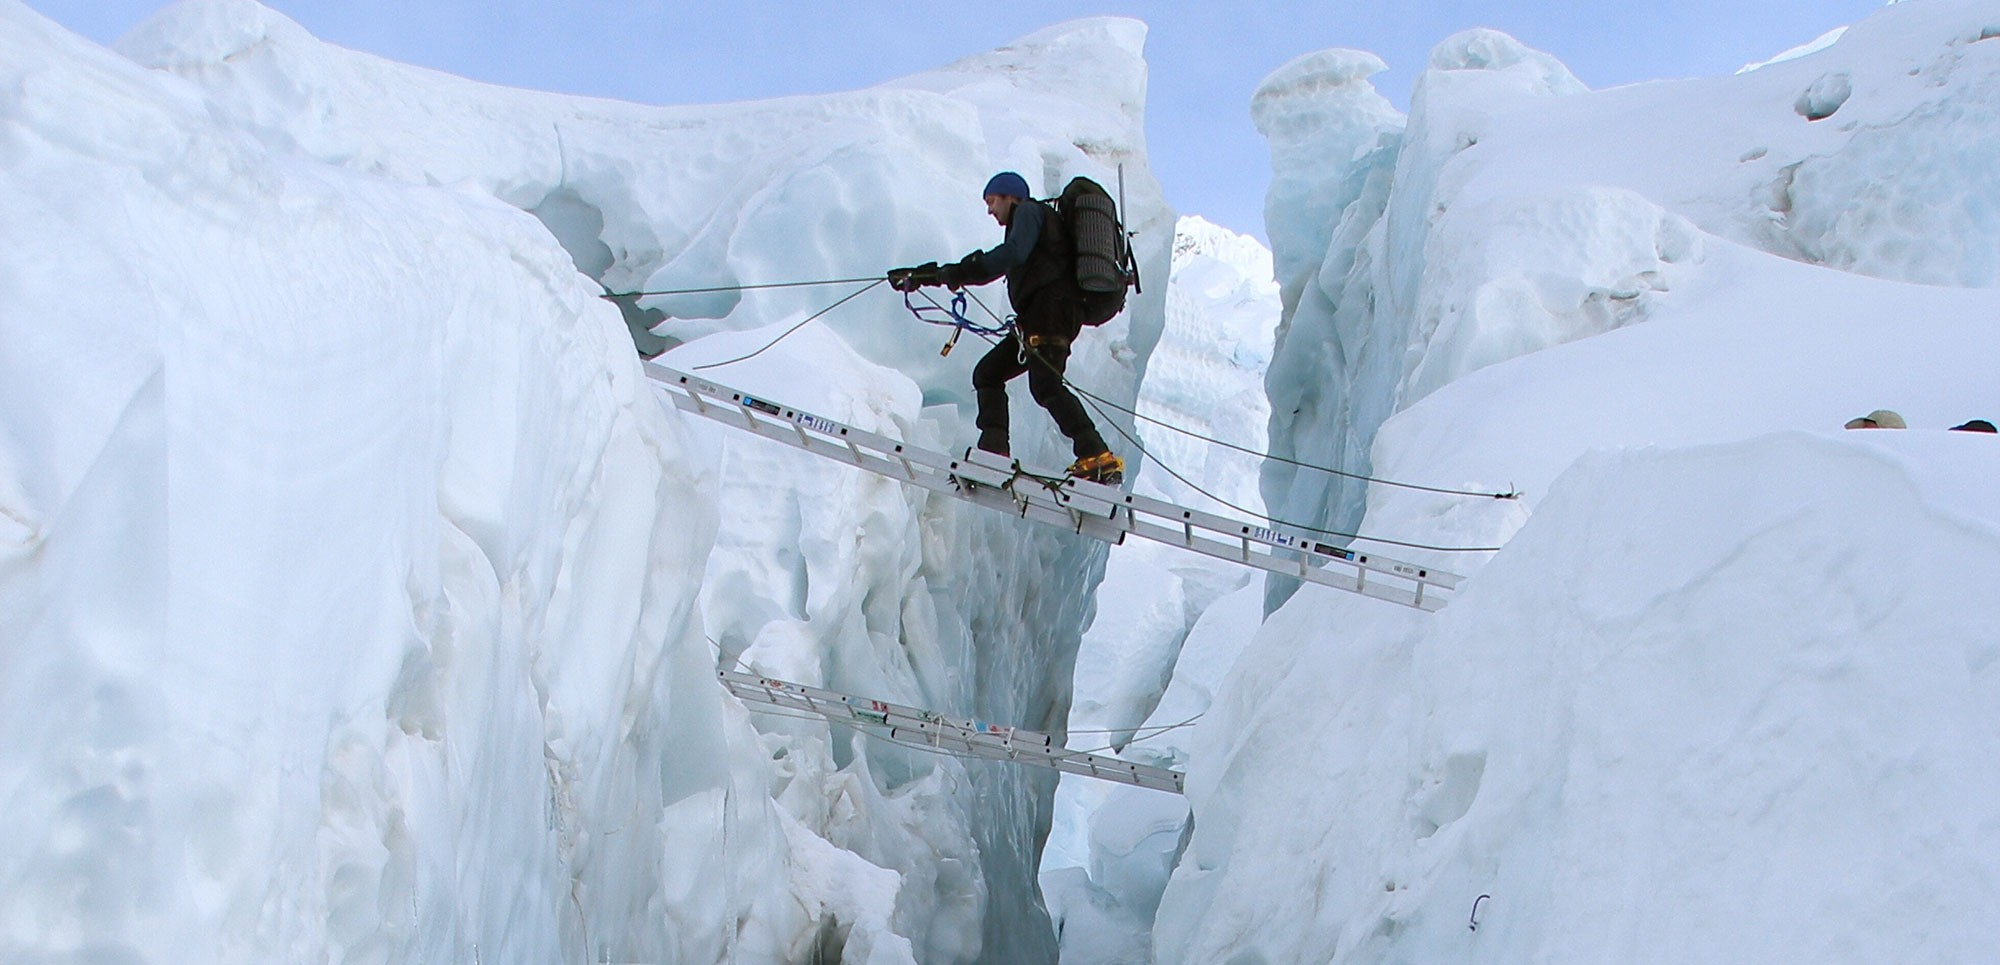 Tom Clowes crossing a crevasse in the Khumbu Icefall on Everest